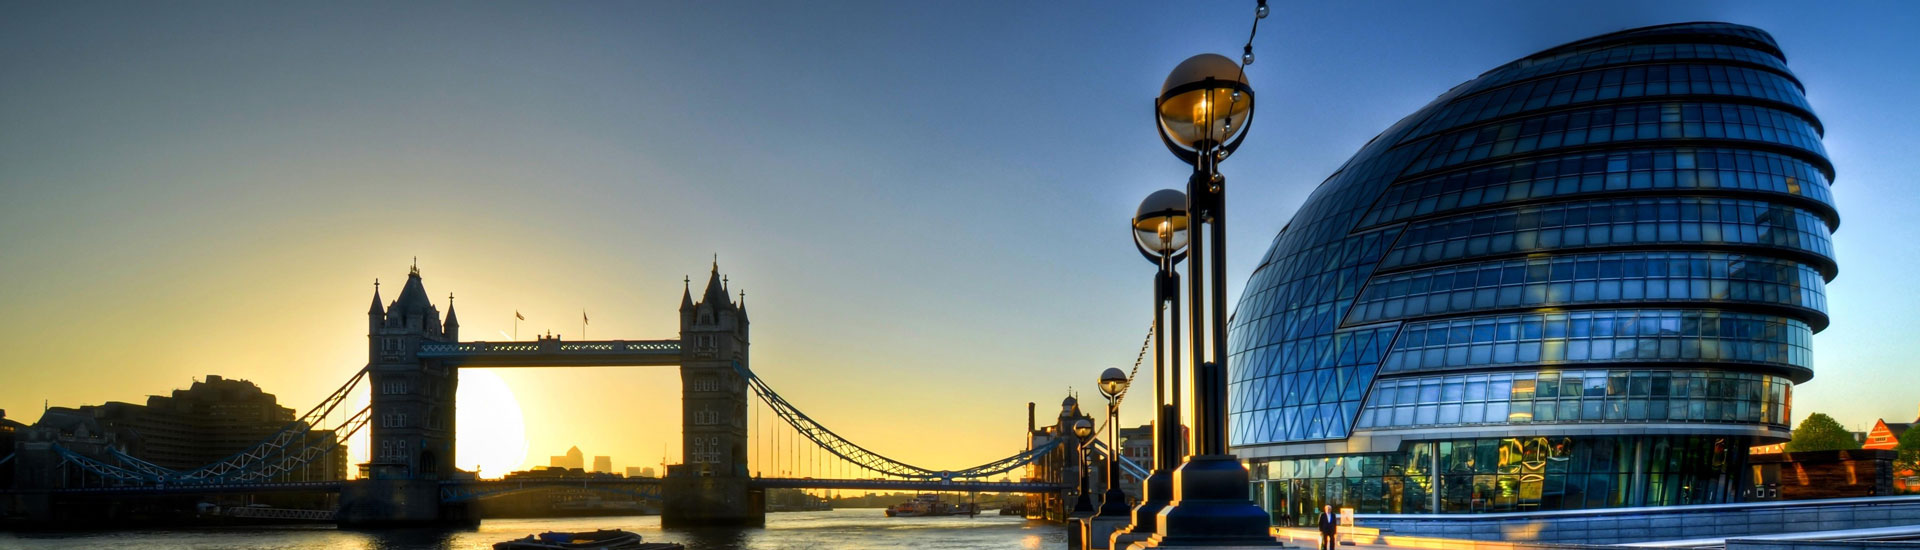 Summer holiday destination slider image London